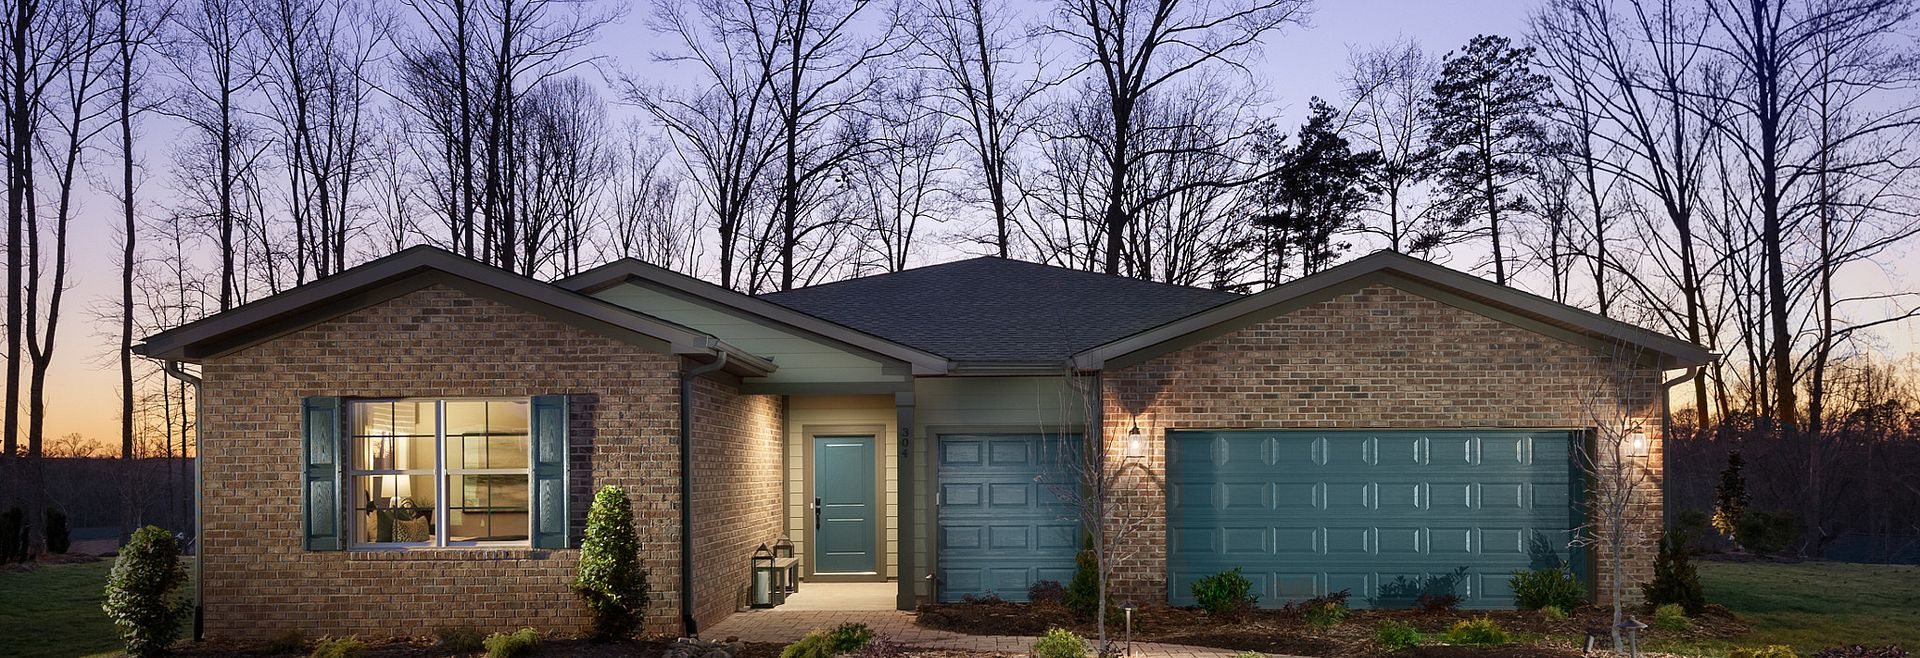 Trilogy Lake Norman by Shea Homes in Charlotte Area North Carolina